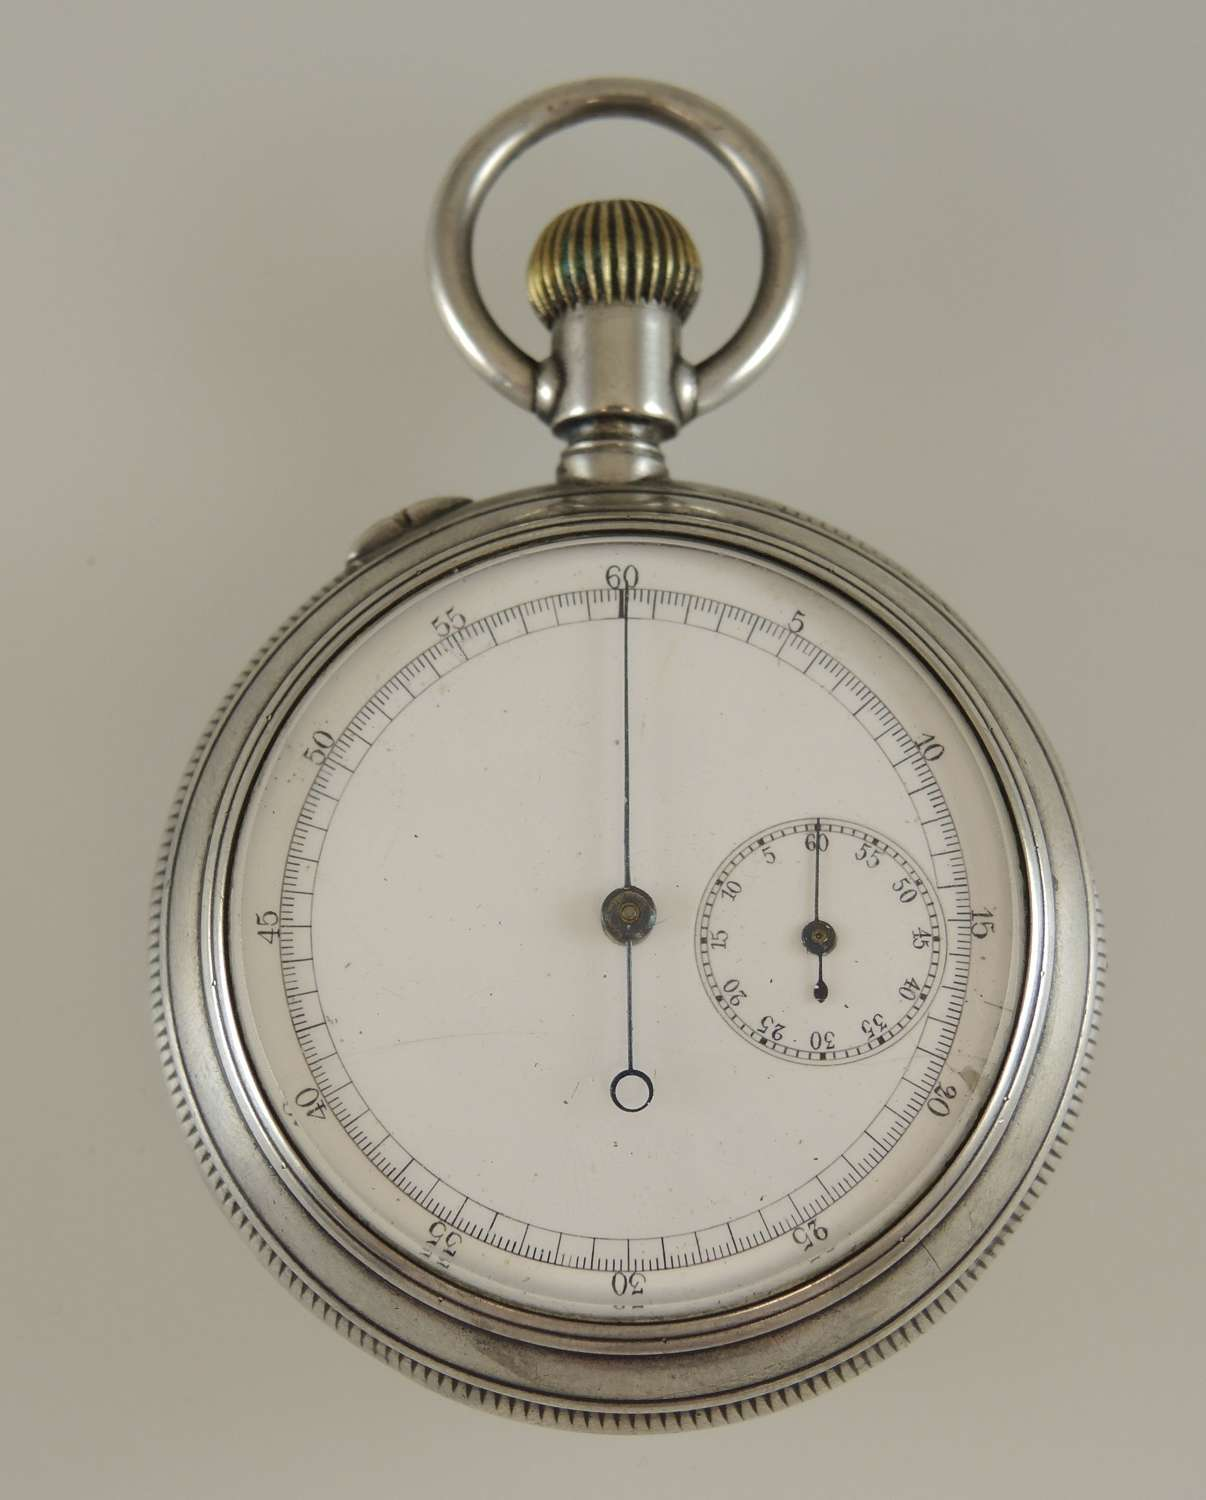 Rare double sided chronograph. Silver case c1890